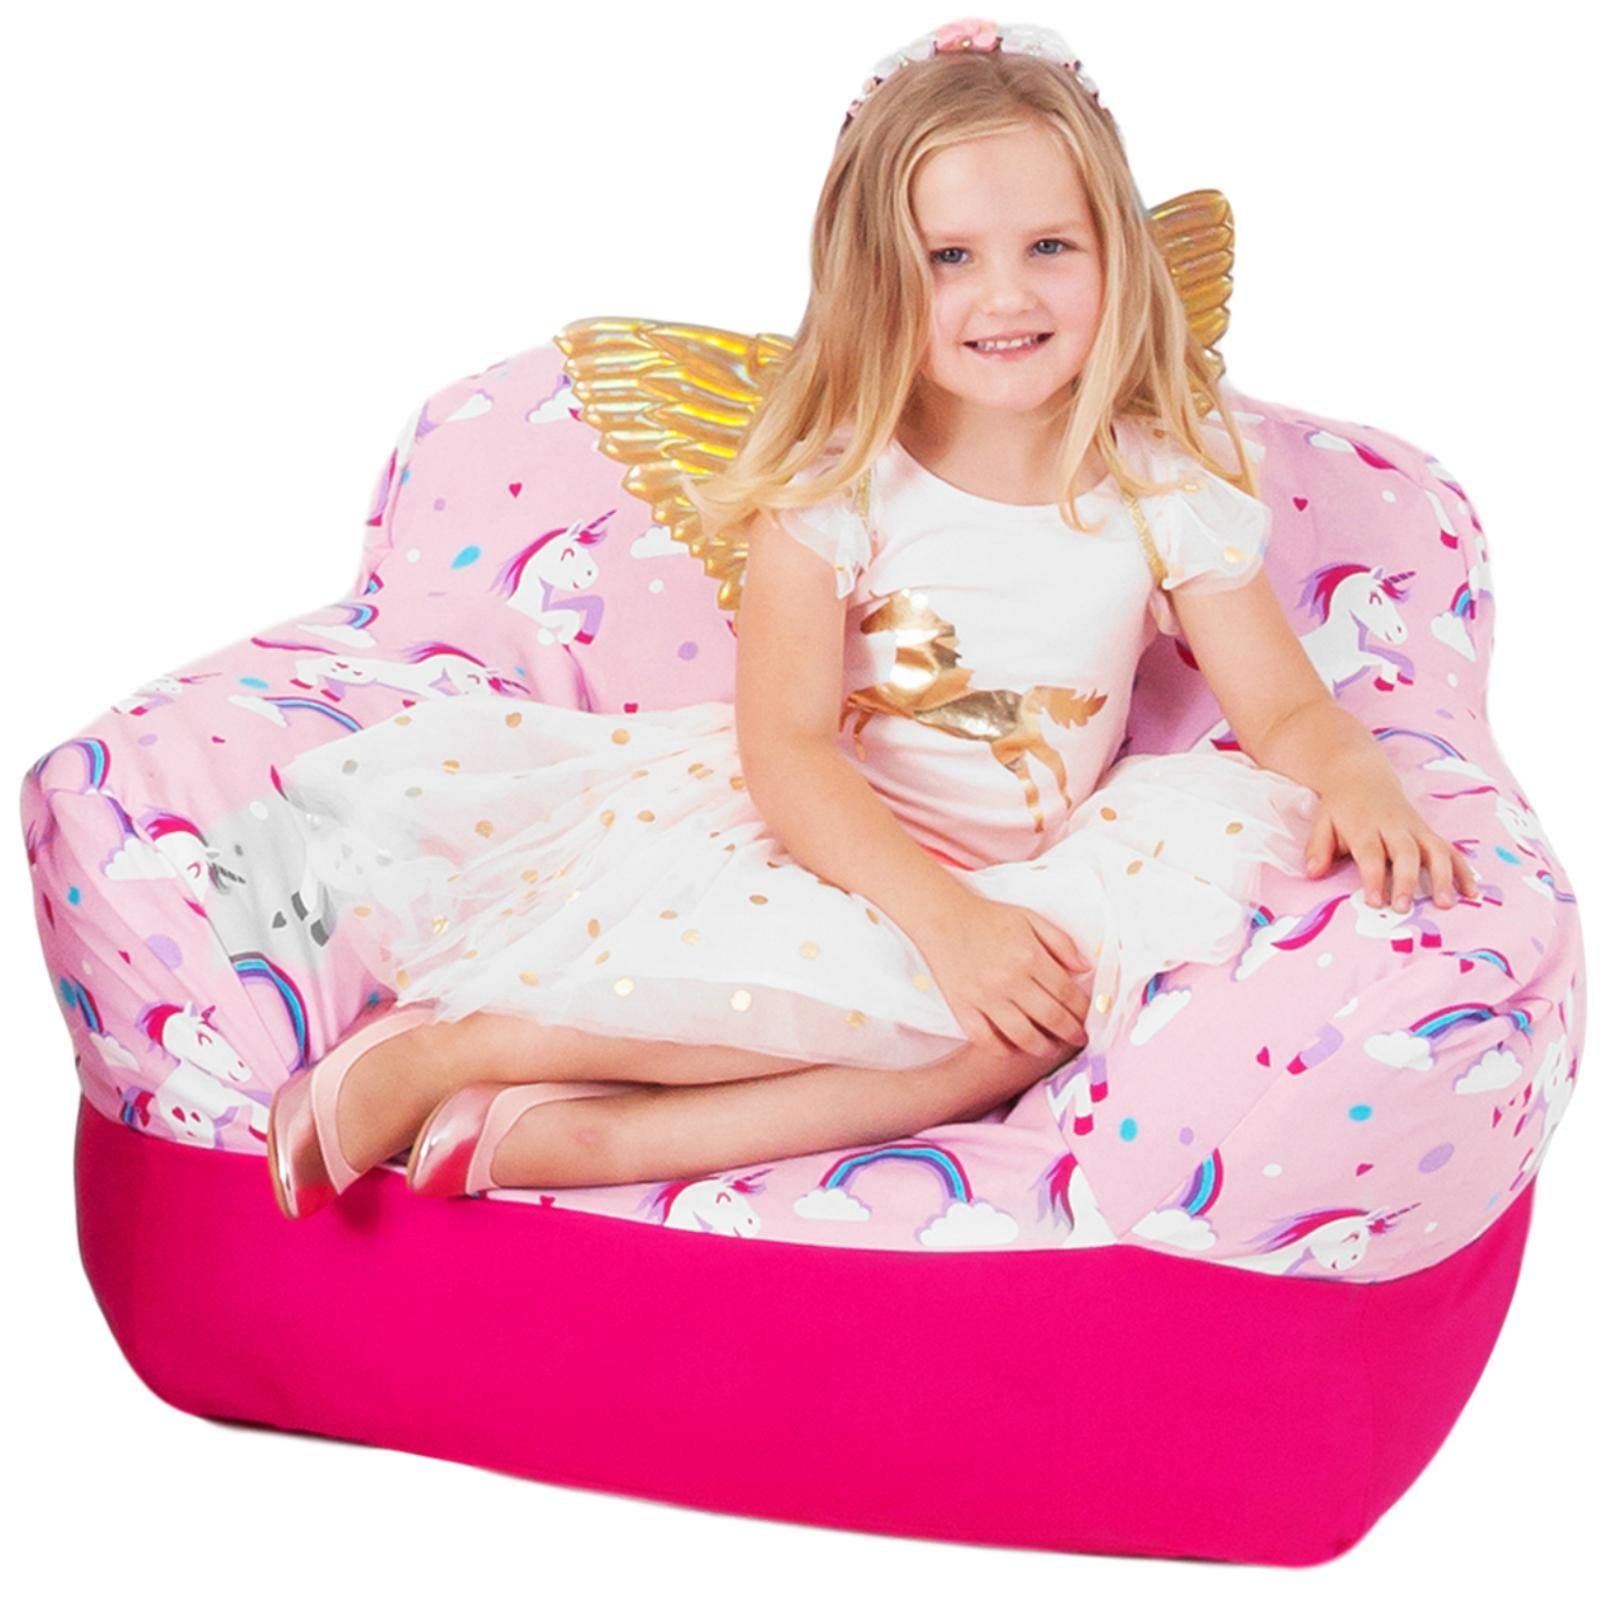 Yayme! Pink Unicorn Beanbag Chair Cover | Our Bean Bag for Girls is Comfy and Shaped Like an Armchair | This Cute Design Will Make Every Princess's Room Look Pretty While Reading or Playing